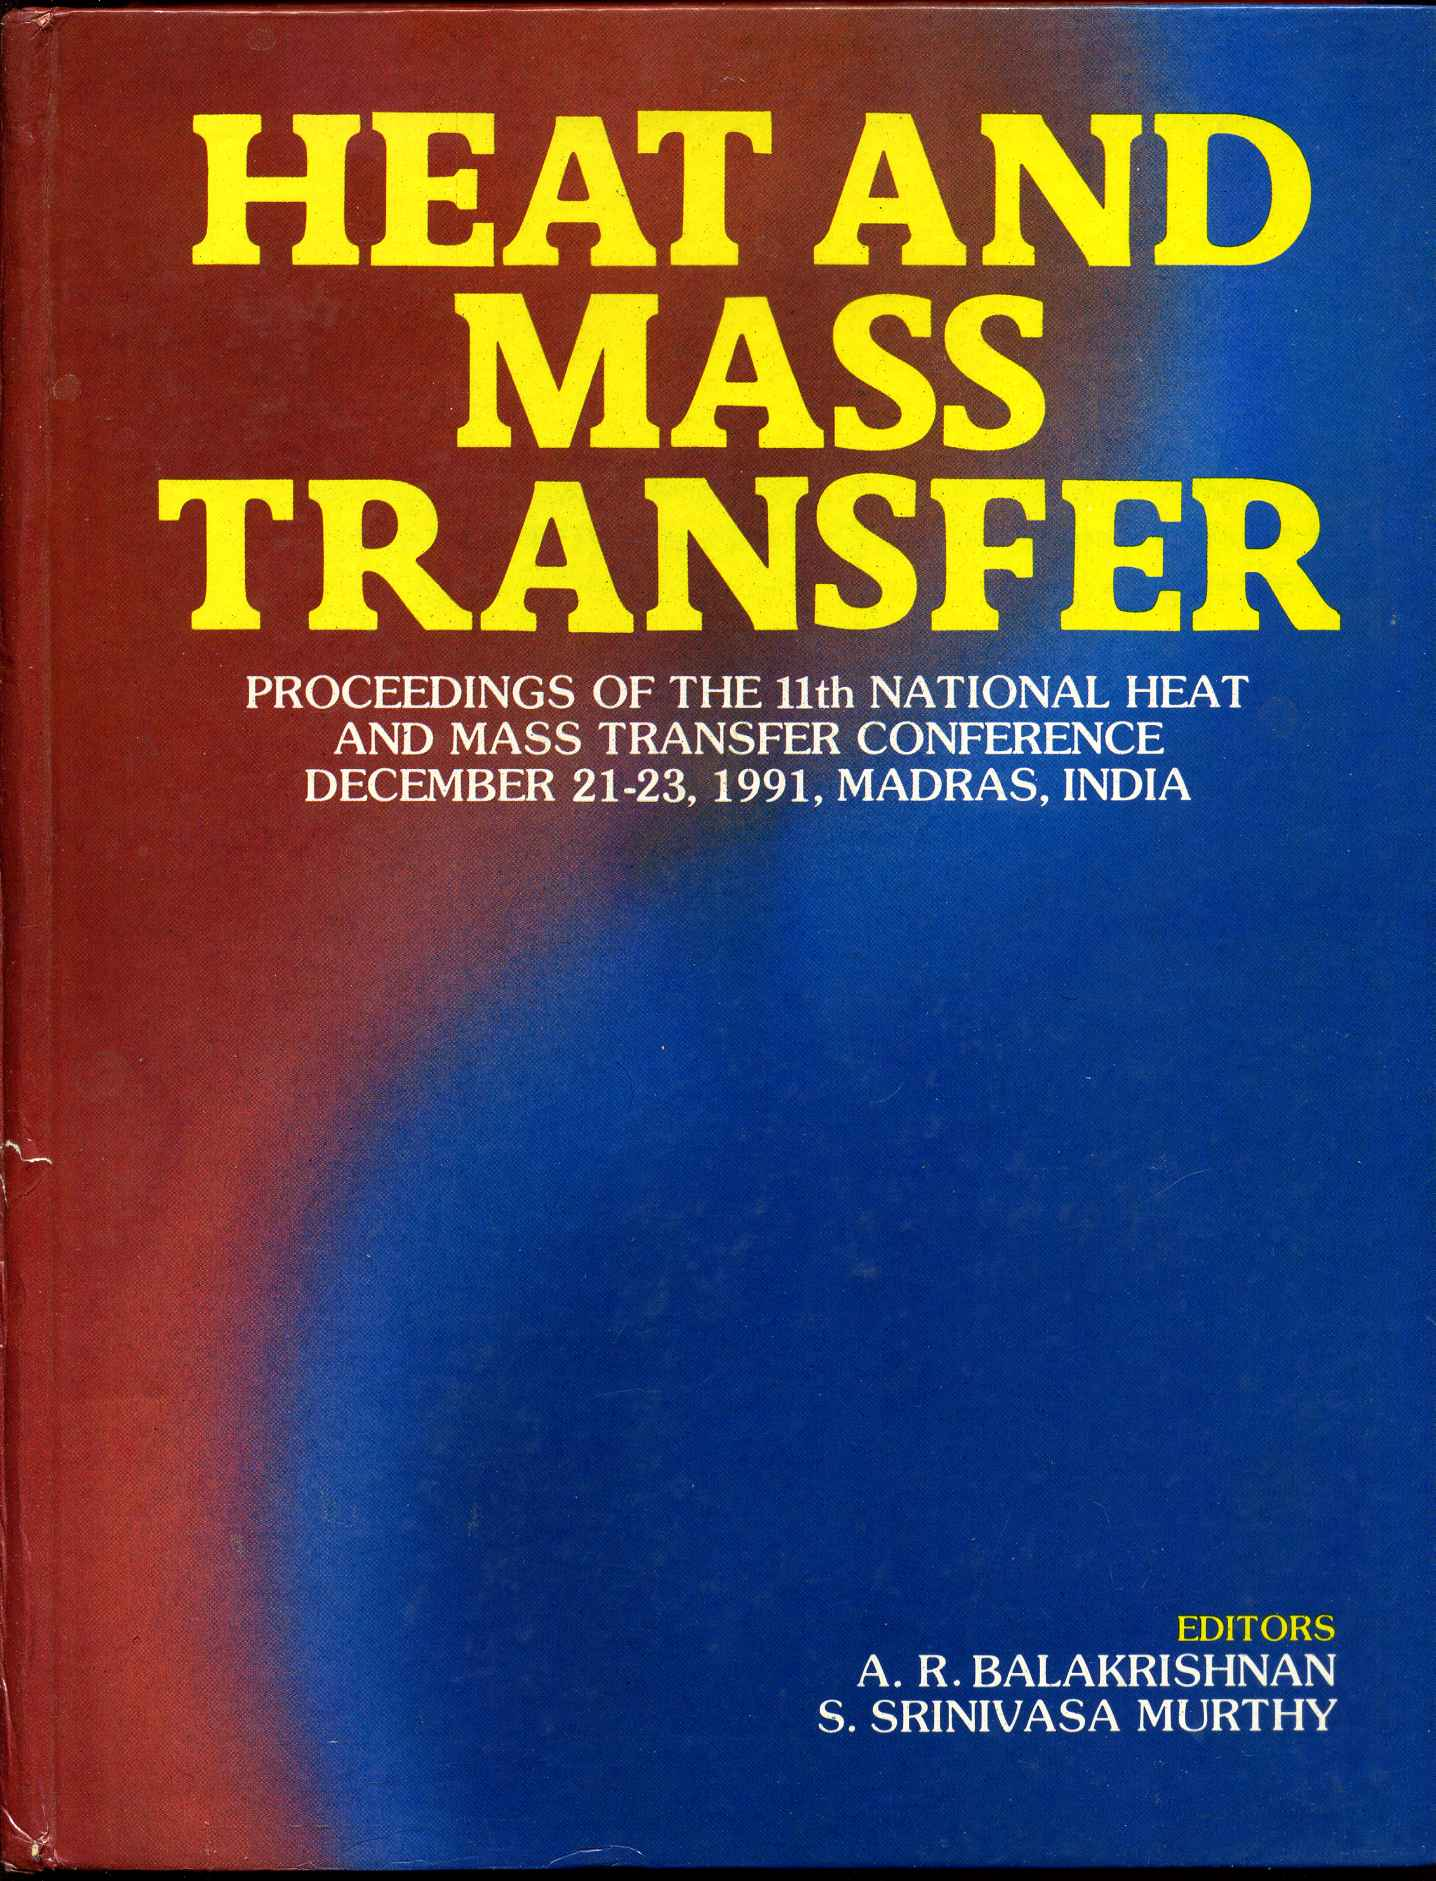 HEAT AND MASS TRANSFER  Proceedings of the 11th National Heat and Mass  Transfer Conference  December 21-23, Madras, India by A  R  Balakrishnan,  S